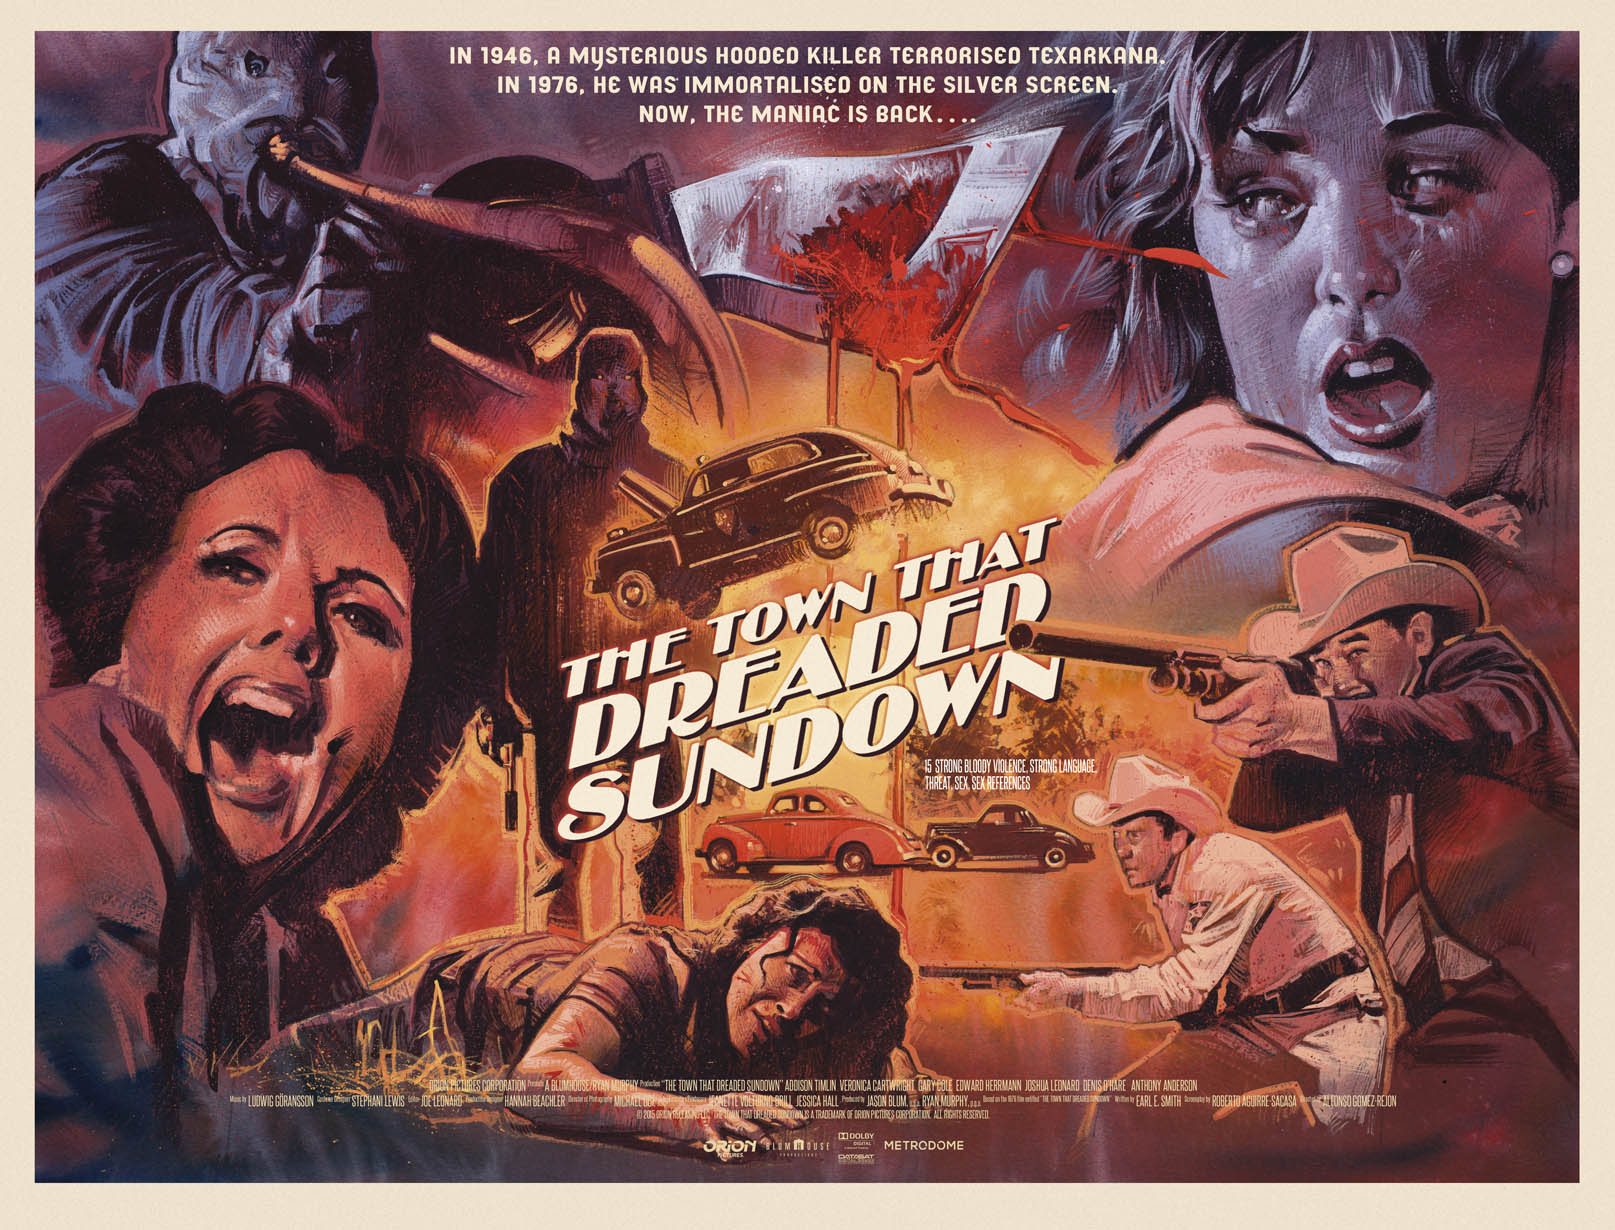 town3 - The Town That Dreaded Sundown Gets a Beautiful Limited Edition Art Print